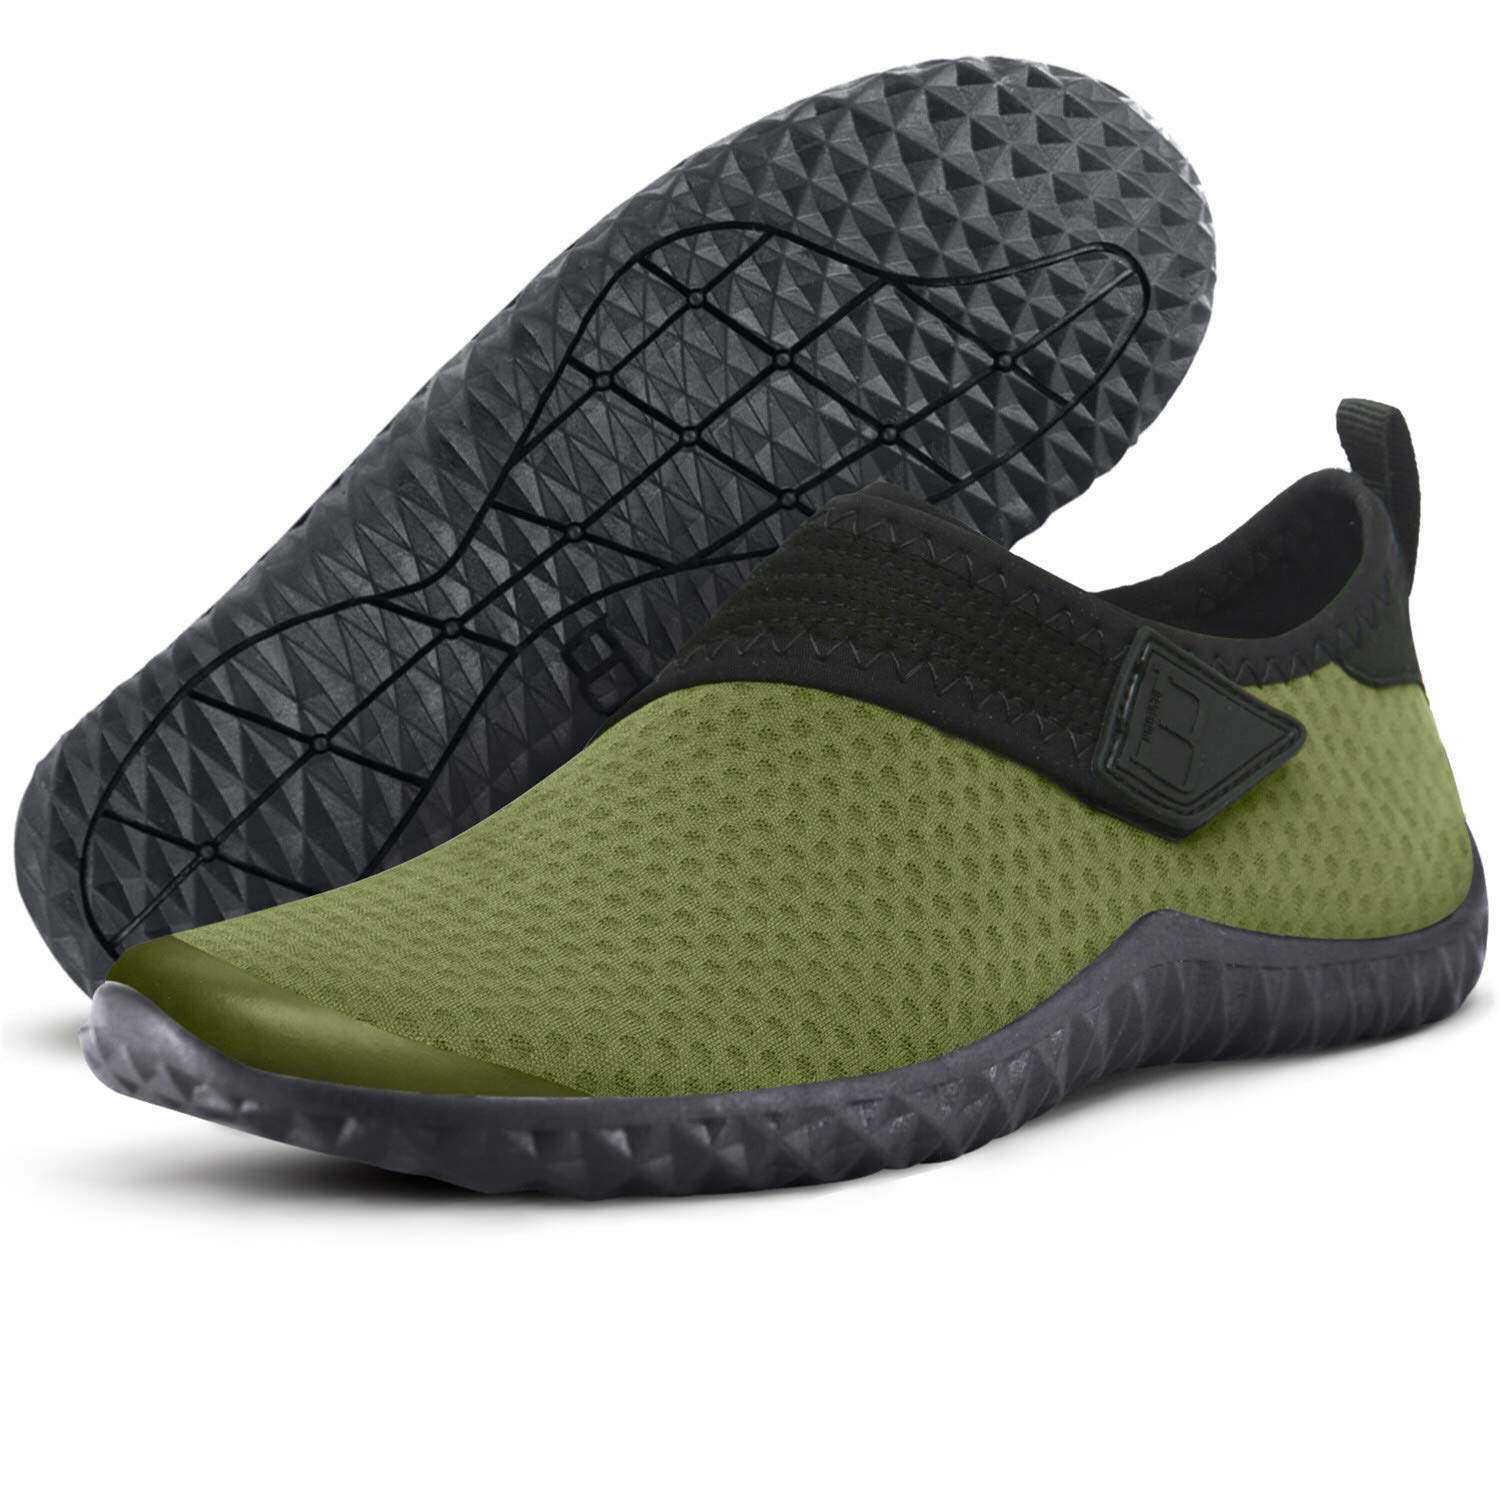 358a3b300e4e59 Centipede Demon Mens Water Shoes Quick Dry Barefoot for Swim Diving Surf  Sports Pool Beach 10 M Army Green